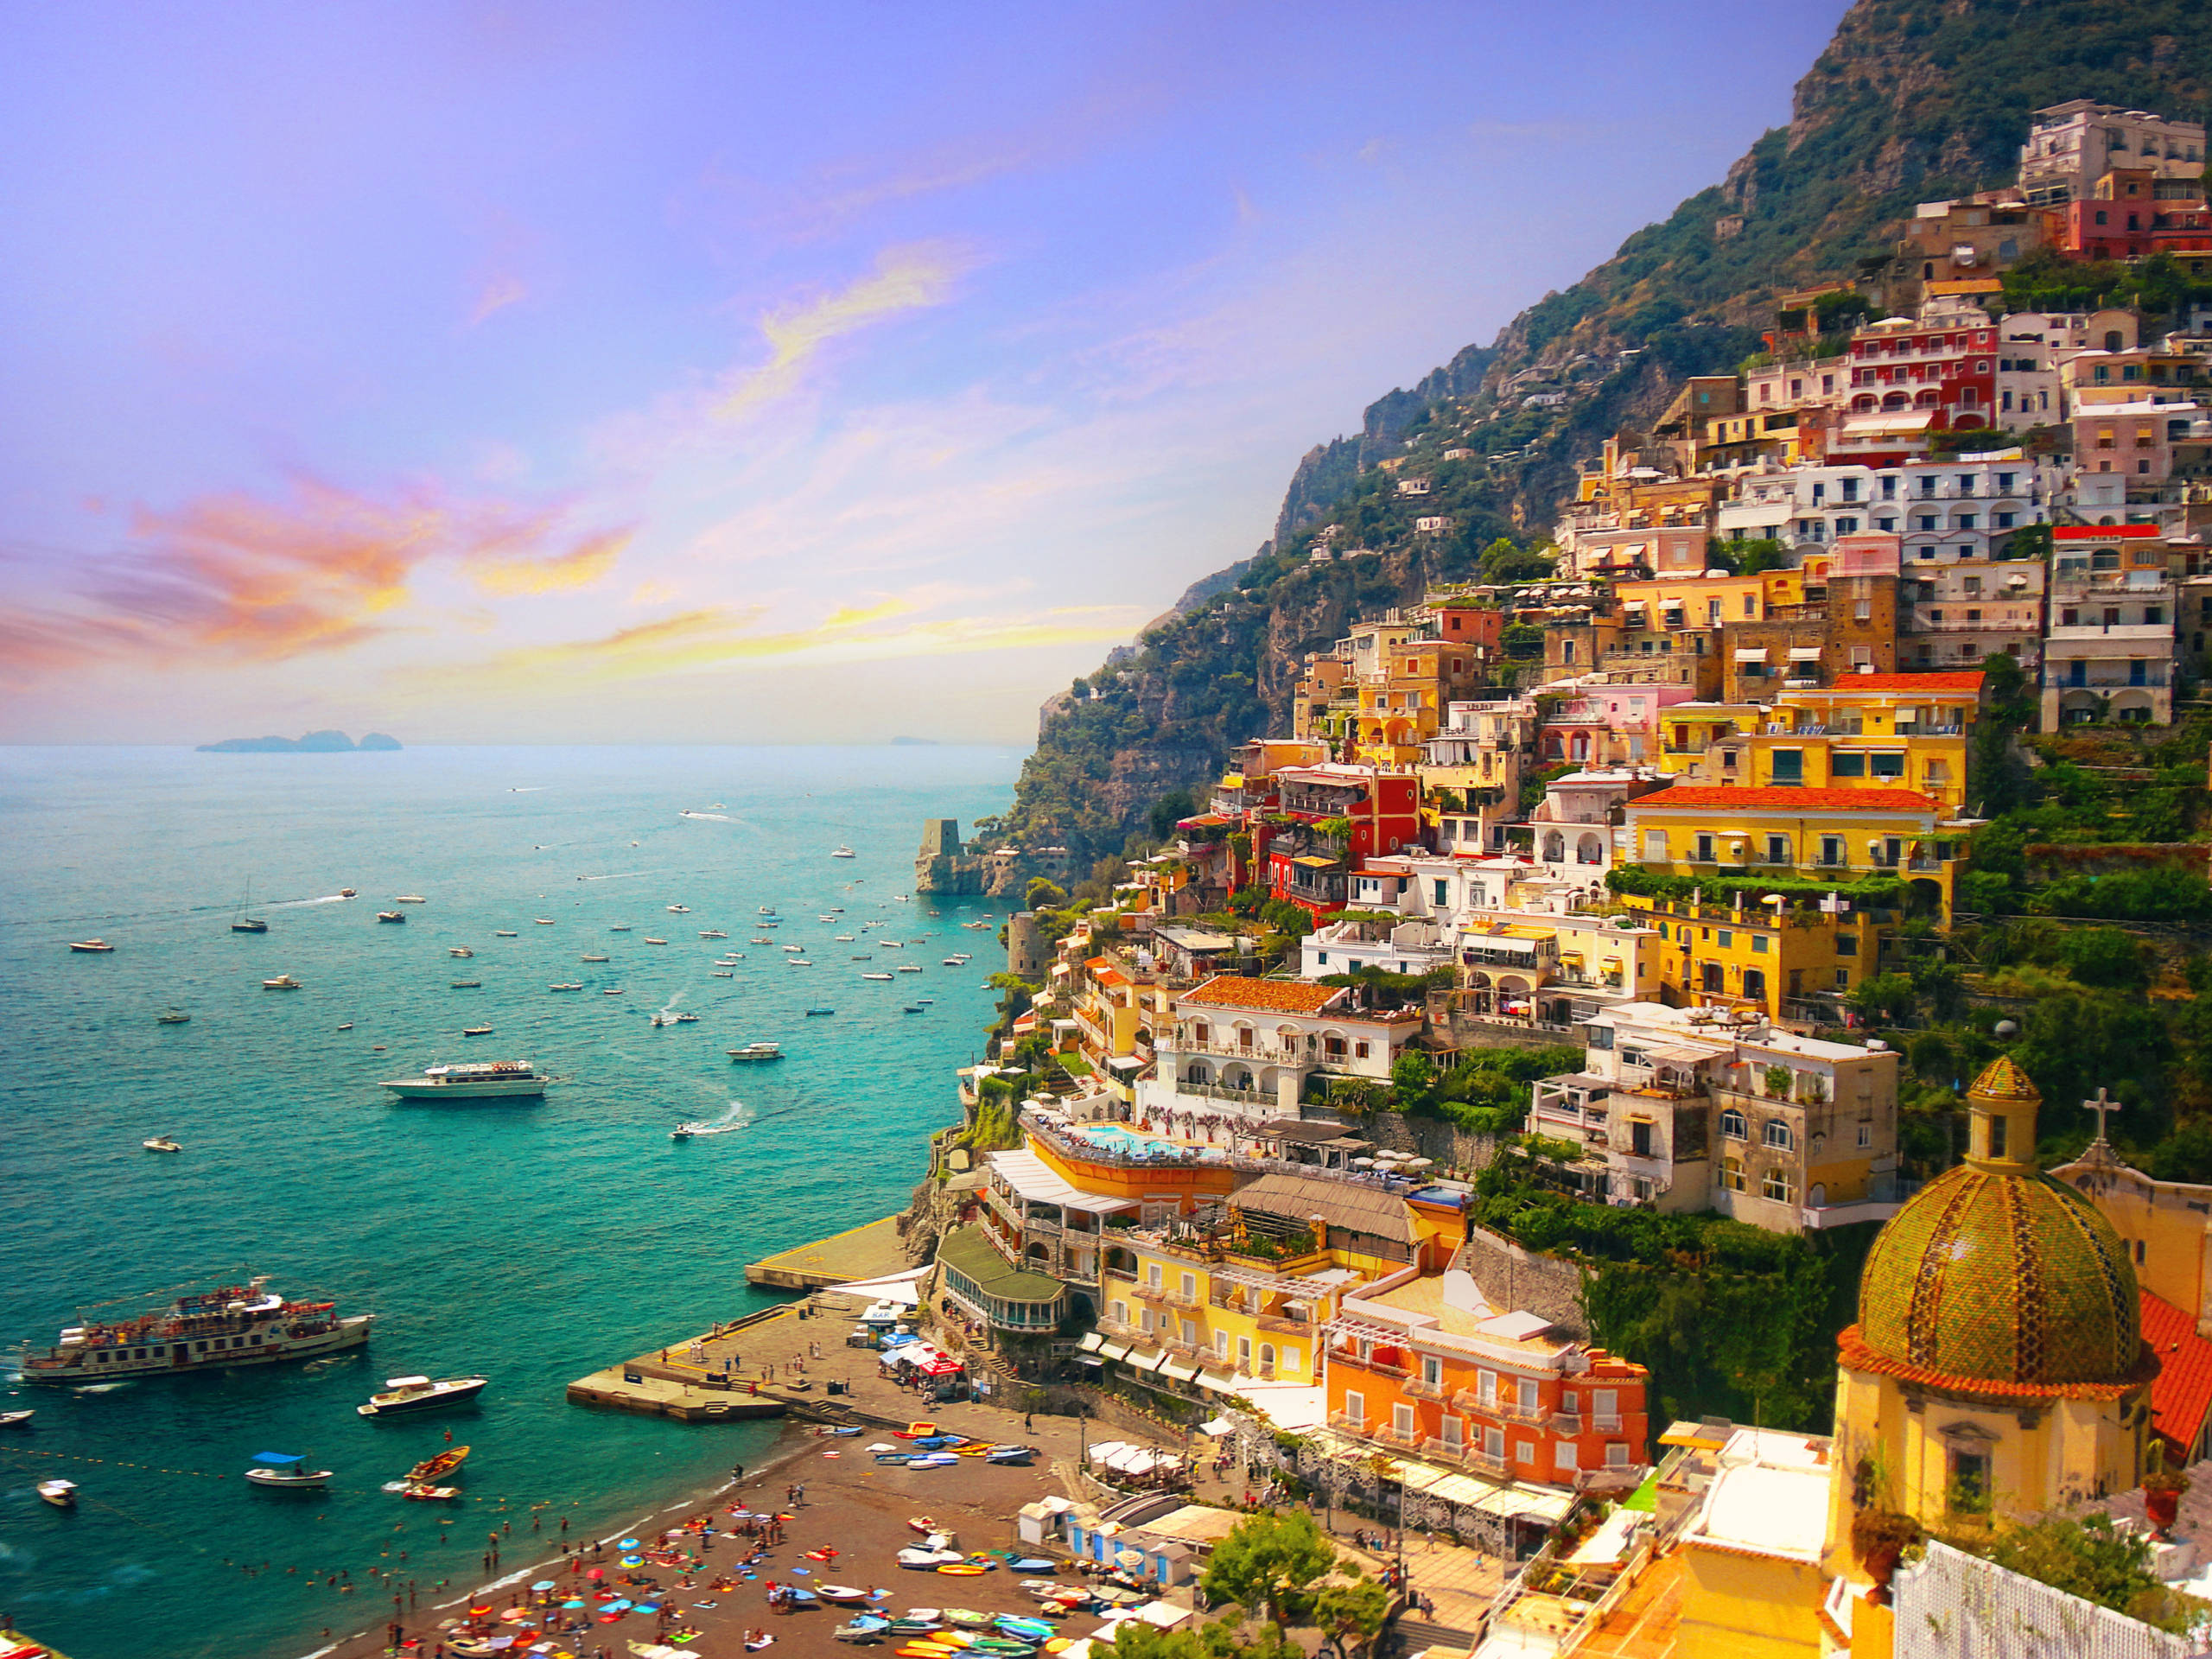 https://cdn.contexttravel.com/image/upload/v1601651985/blog/Destination%20Italy/GettyImages-724345765-scaled.jpg